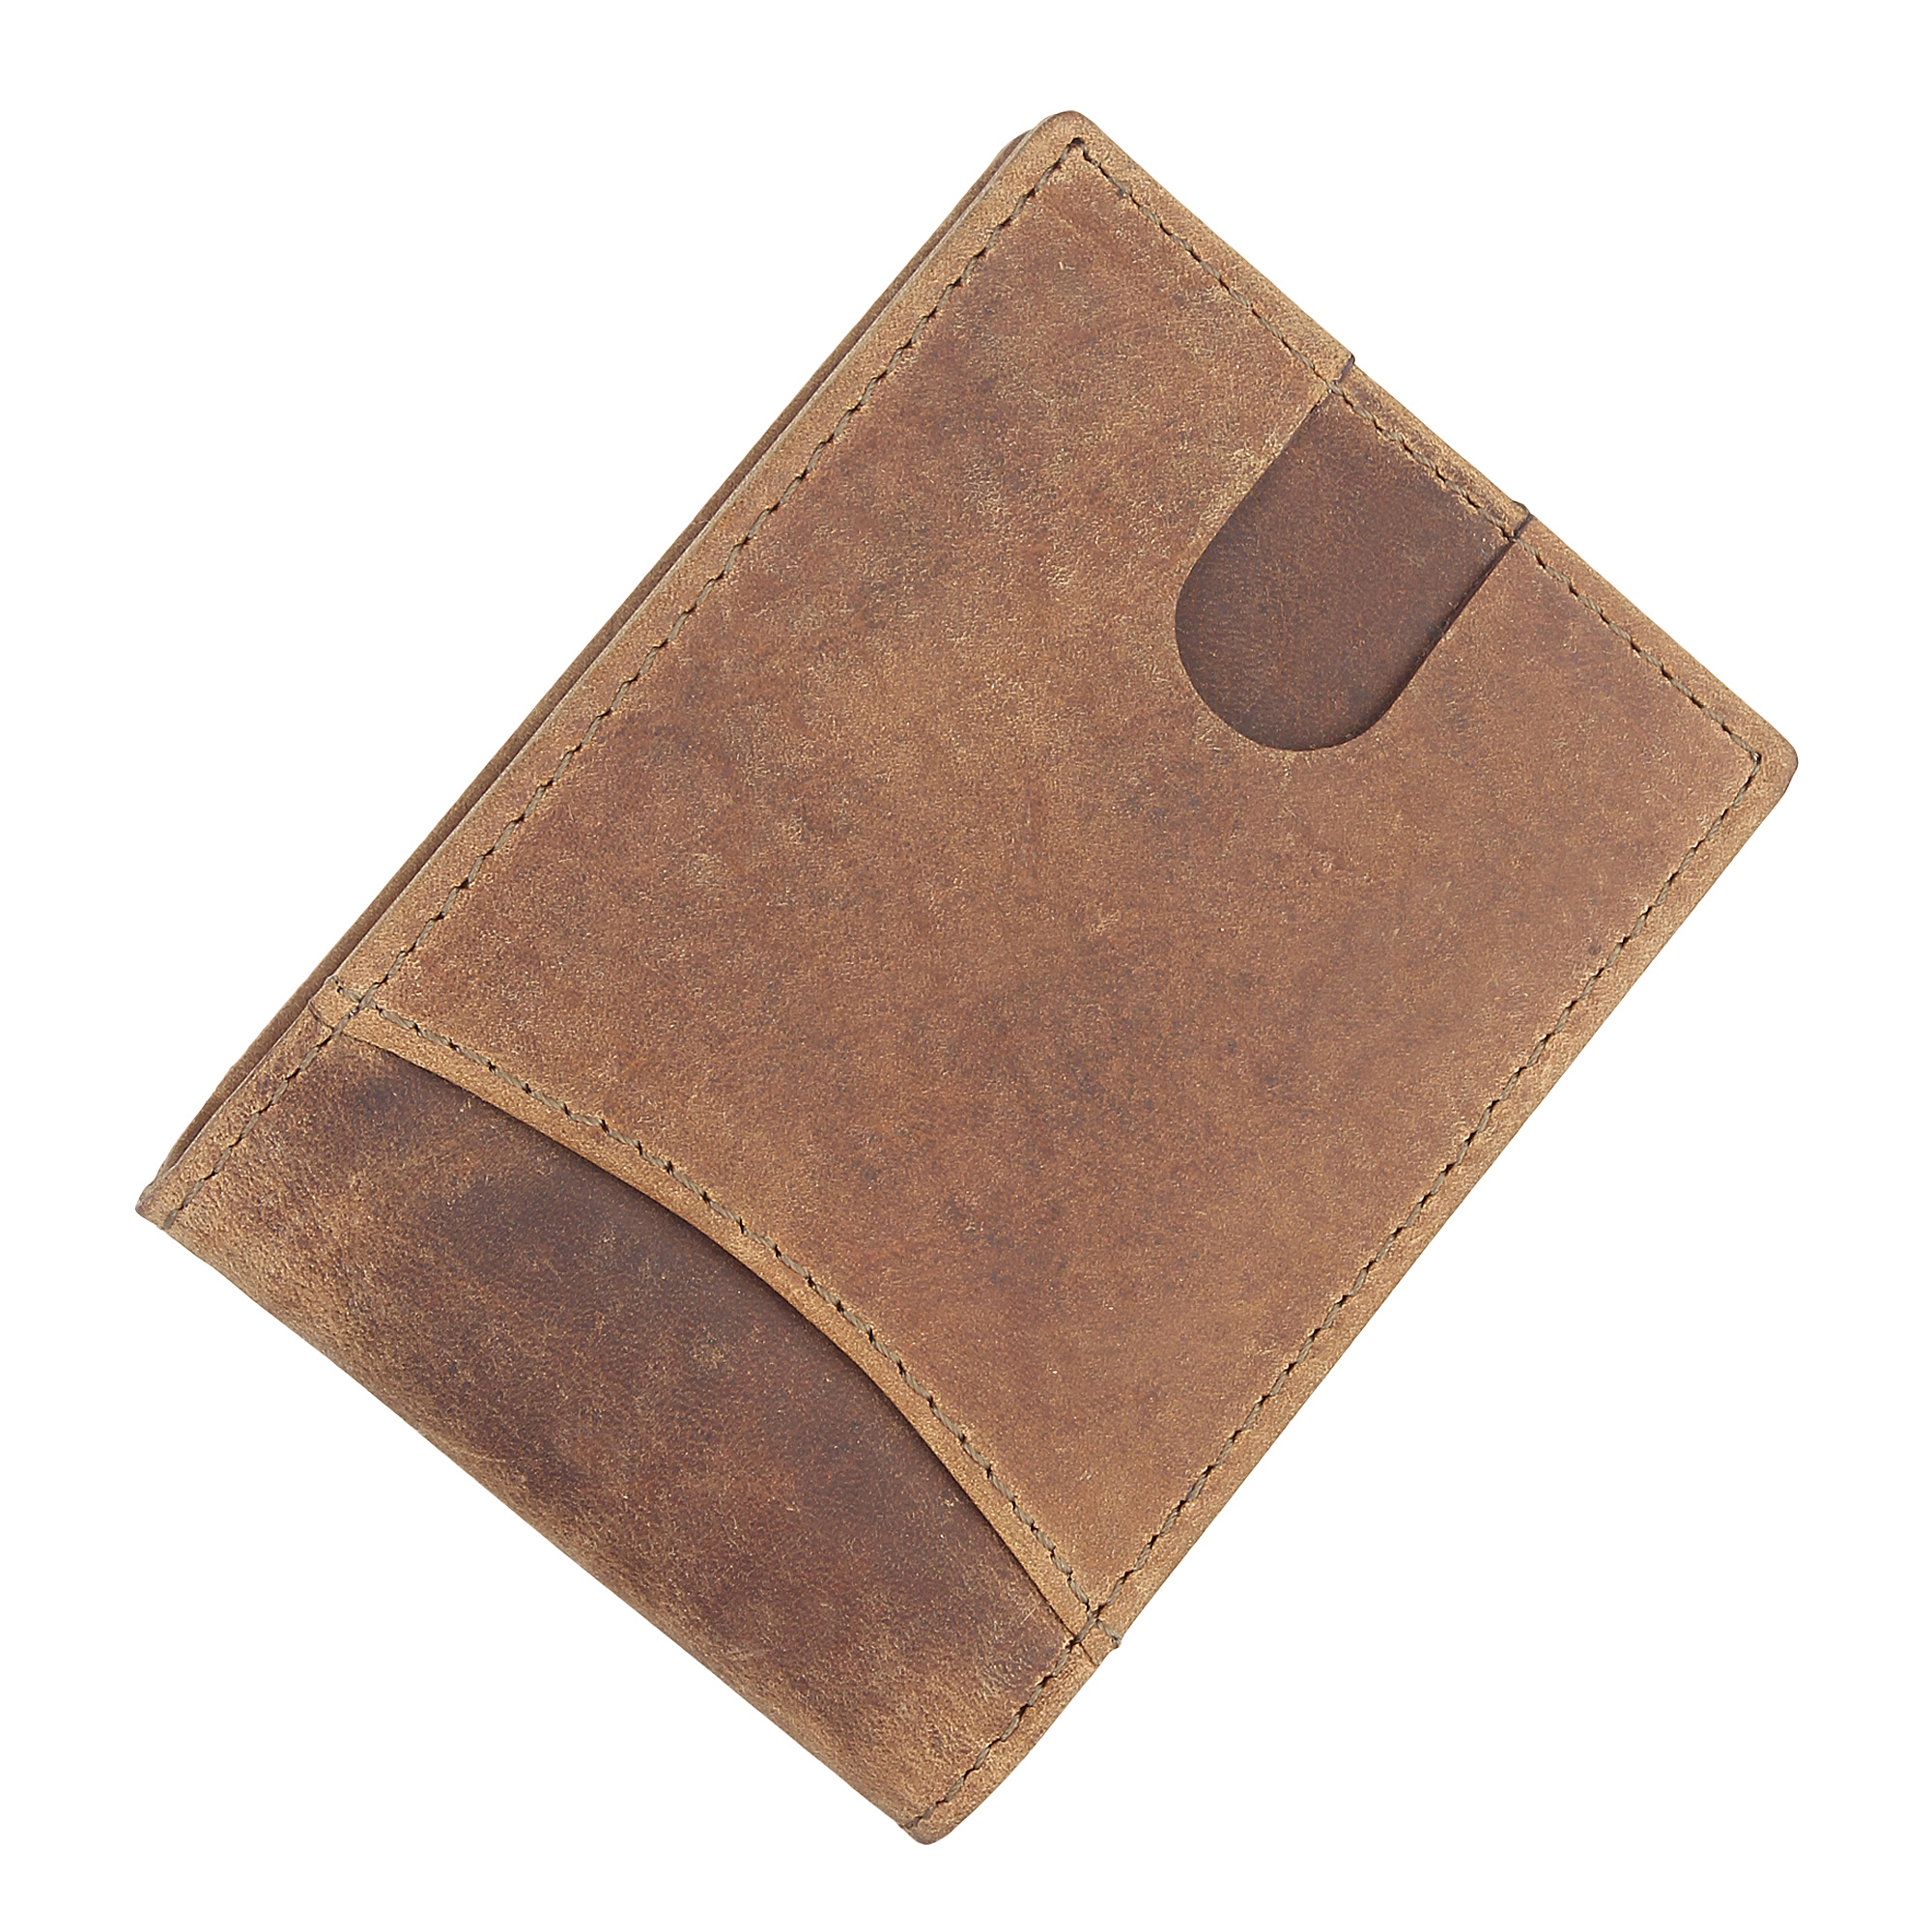 Leather Money Clip Wallet Manufacturers In Alabama, Money Clip Wallet Suppliers In Alabama, Money Clip Wallet Wholesalers In Alabama, Money Clip Wallet Traders In Alabama